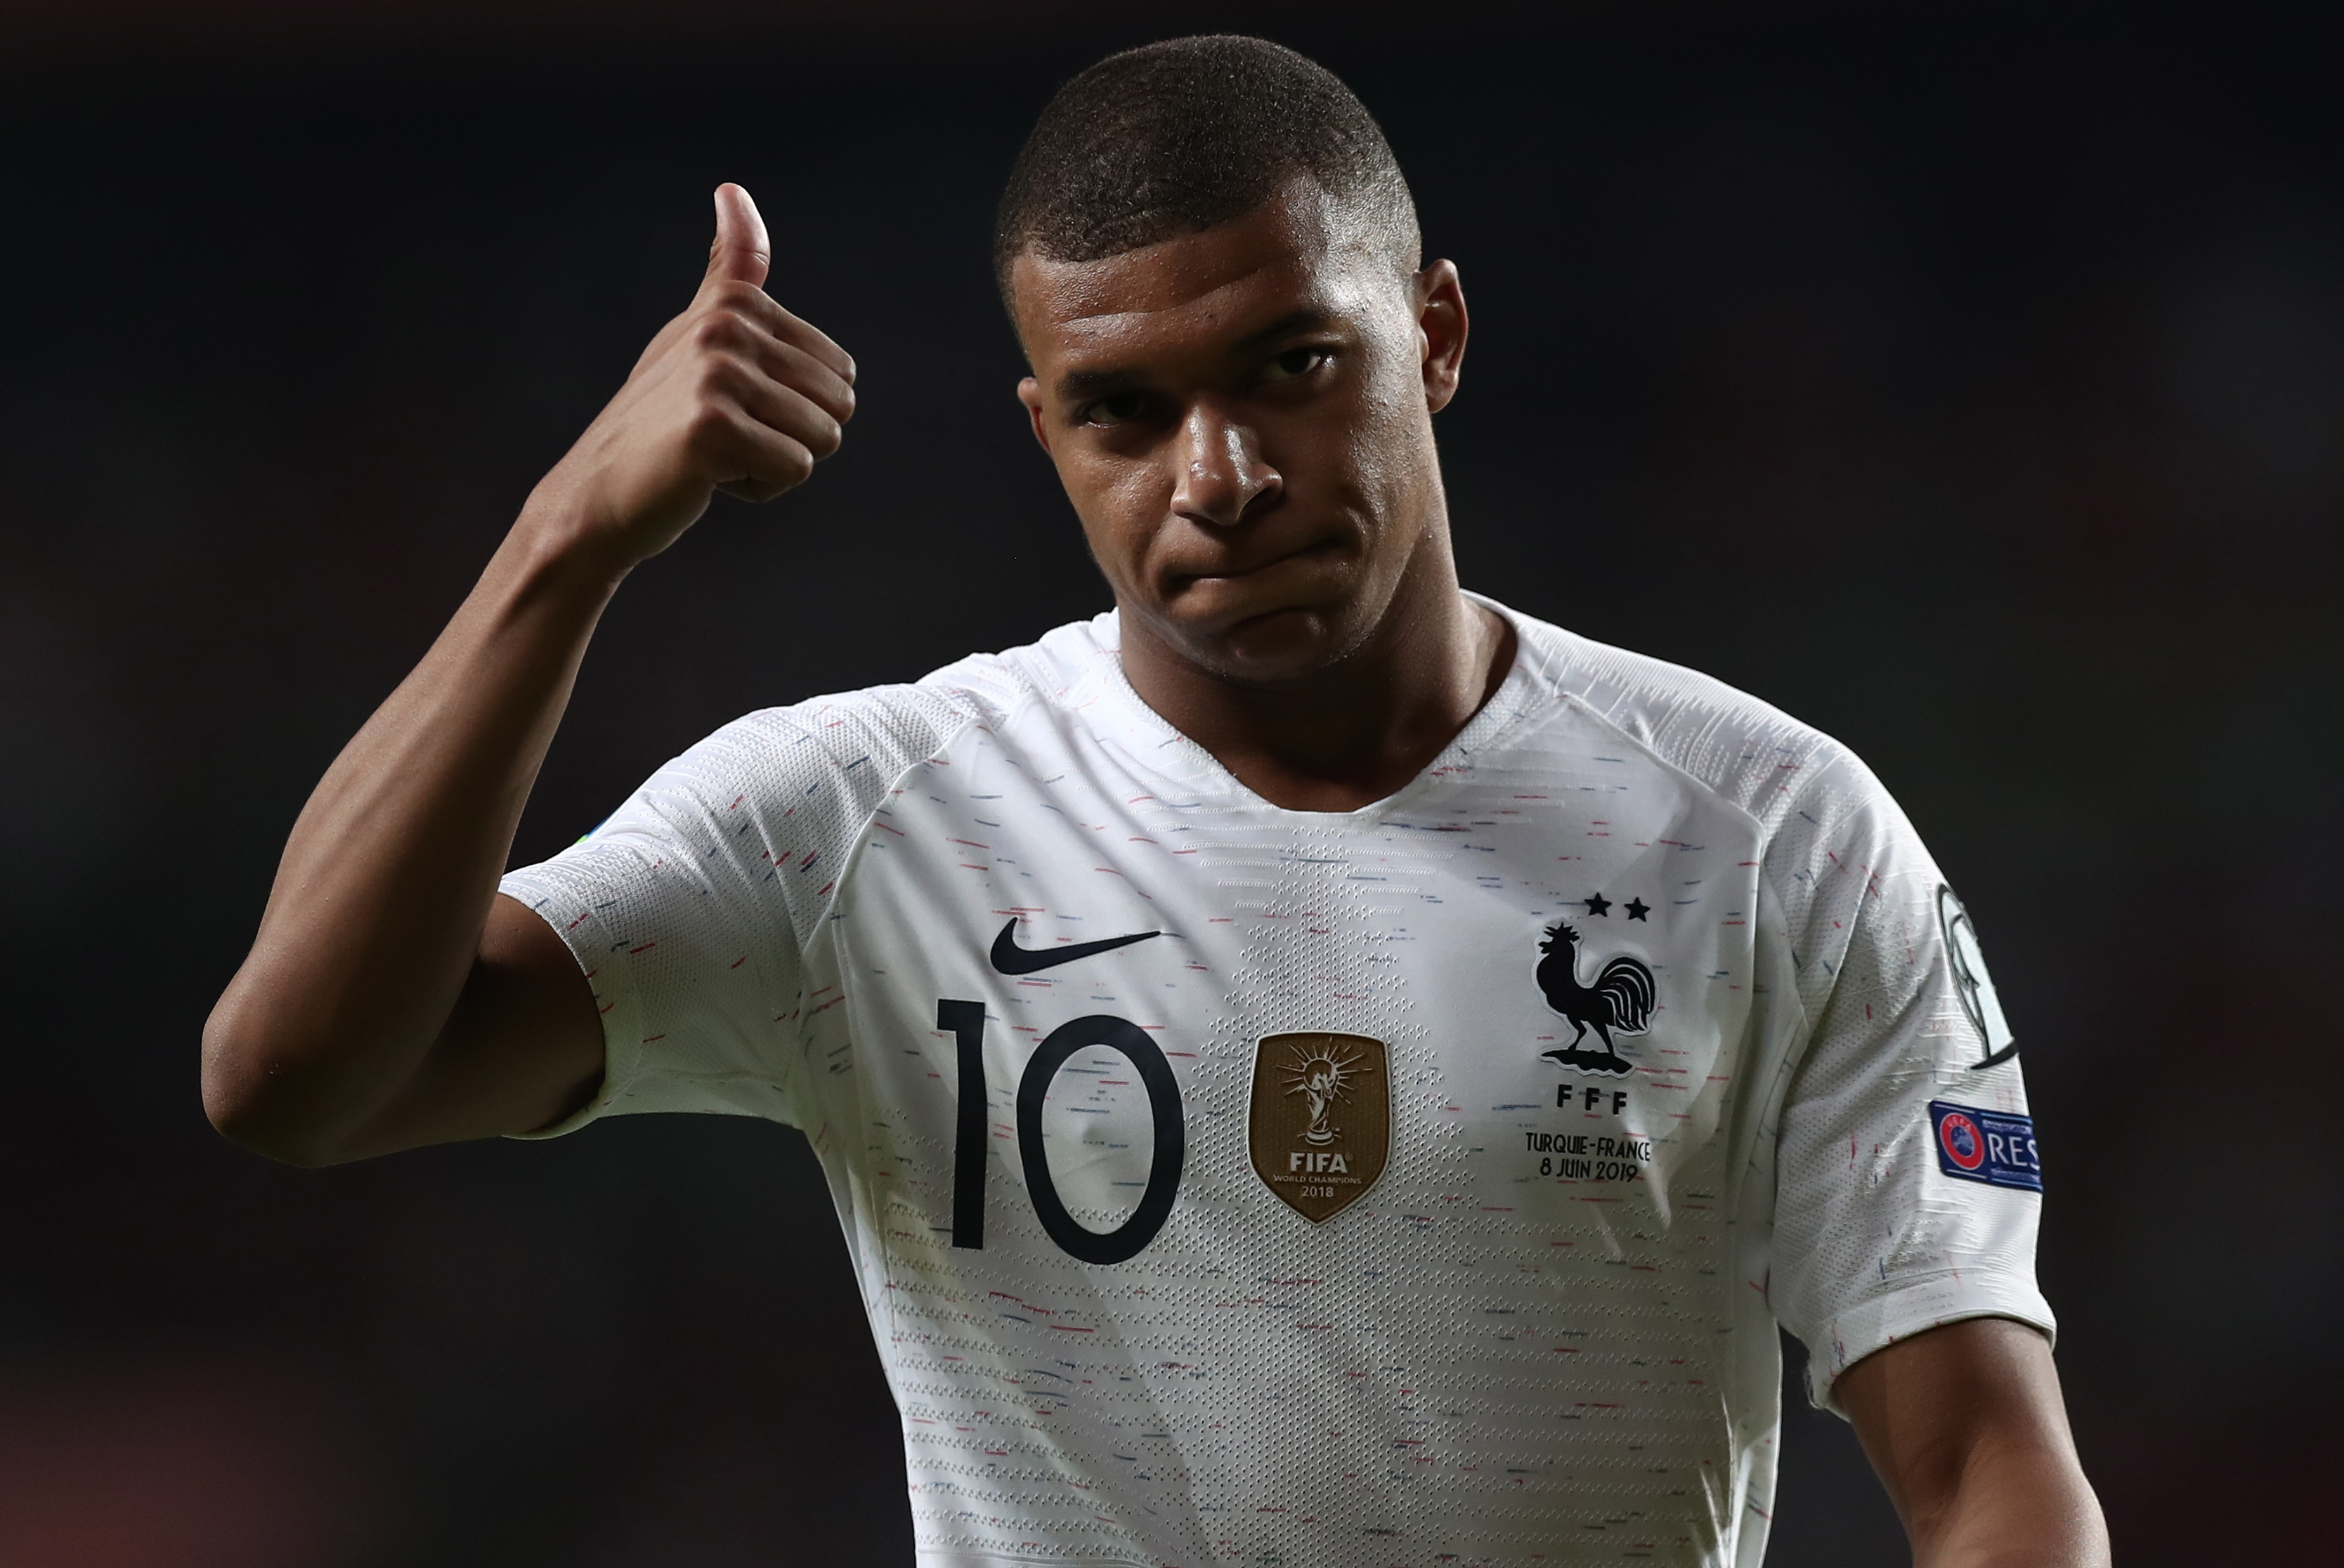 Mbappe hits out at 'Fake News' Twitter account